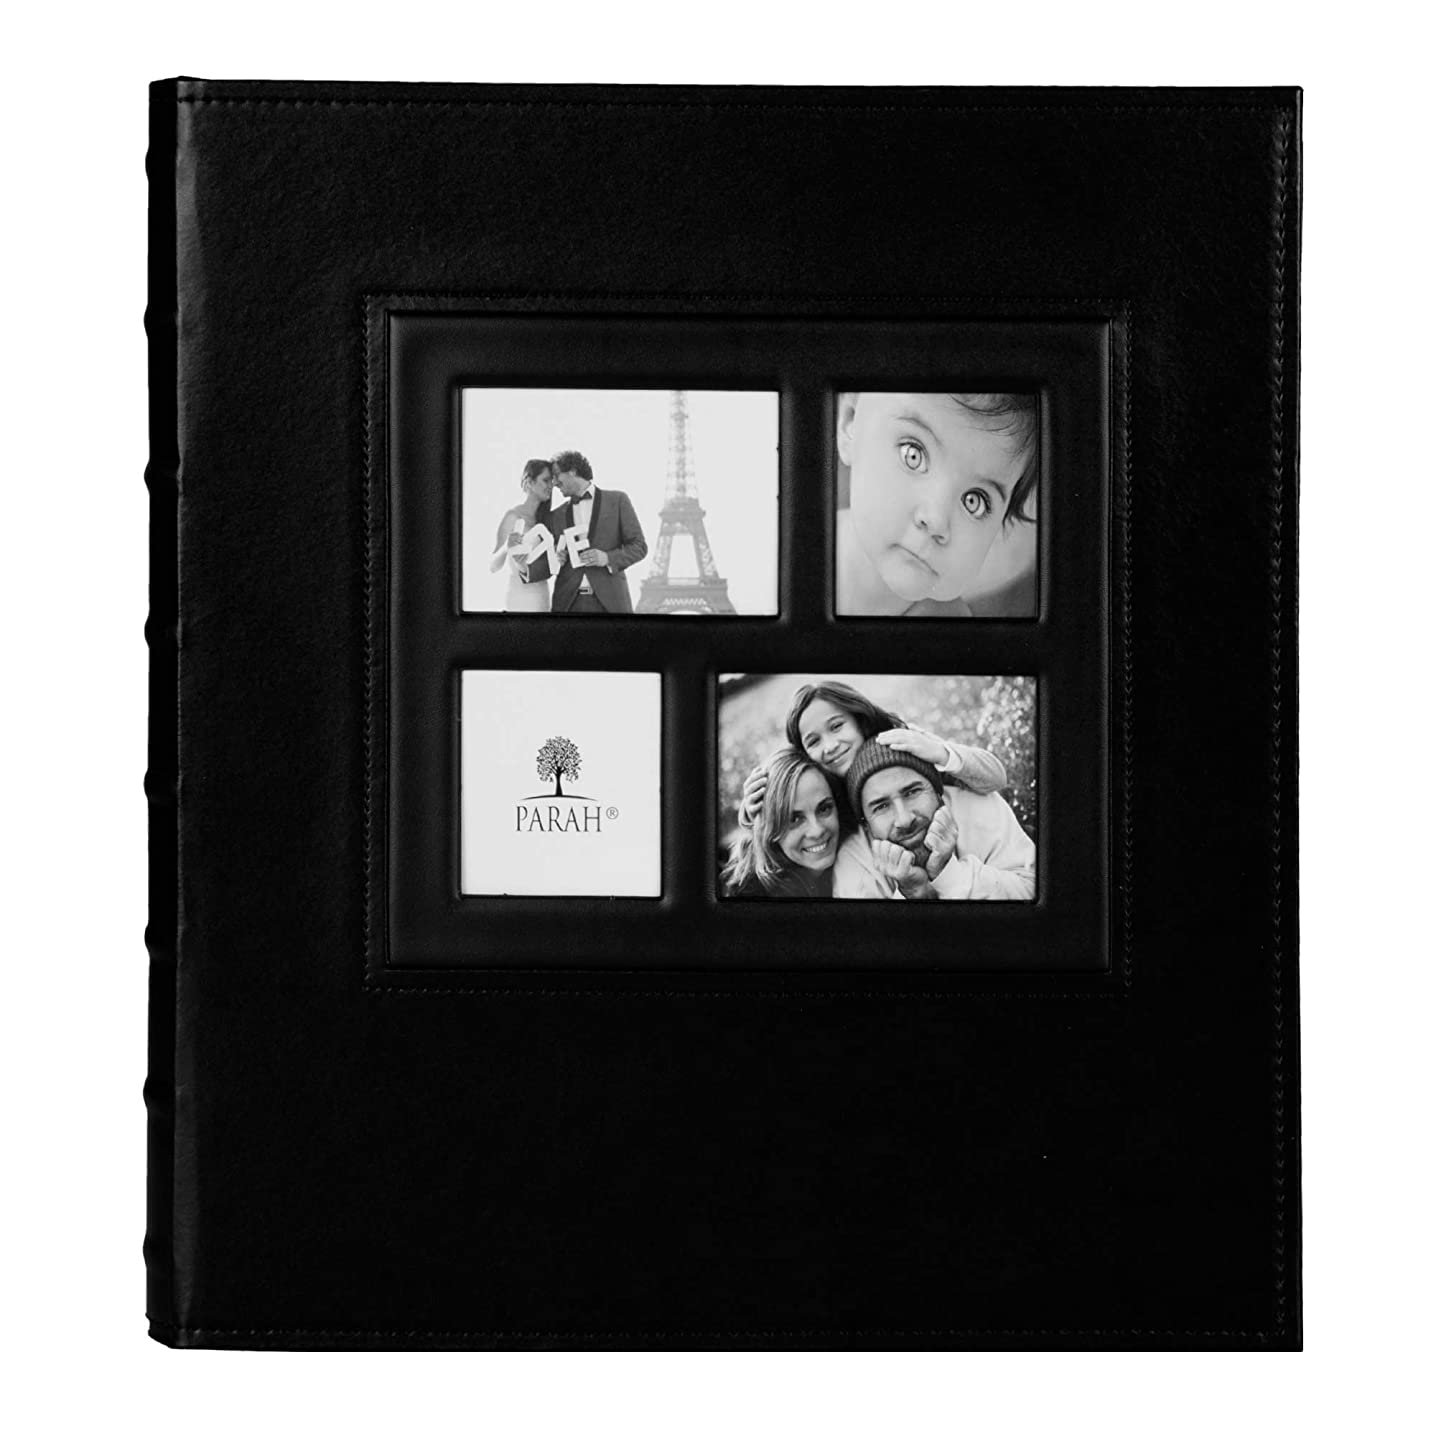 PARAH LIFE Premium 500 Photo - Family Wedding Anniversary Baby Vacation Album Sewn Bonded Leather Book Bound Multi-Directional 500 4x6 Photos 5 Per Page. - Large Capacity Deluxe Customizable (Black)